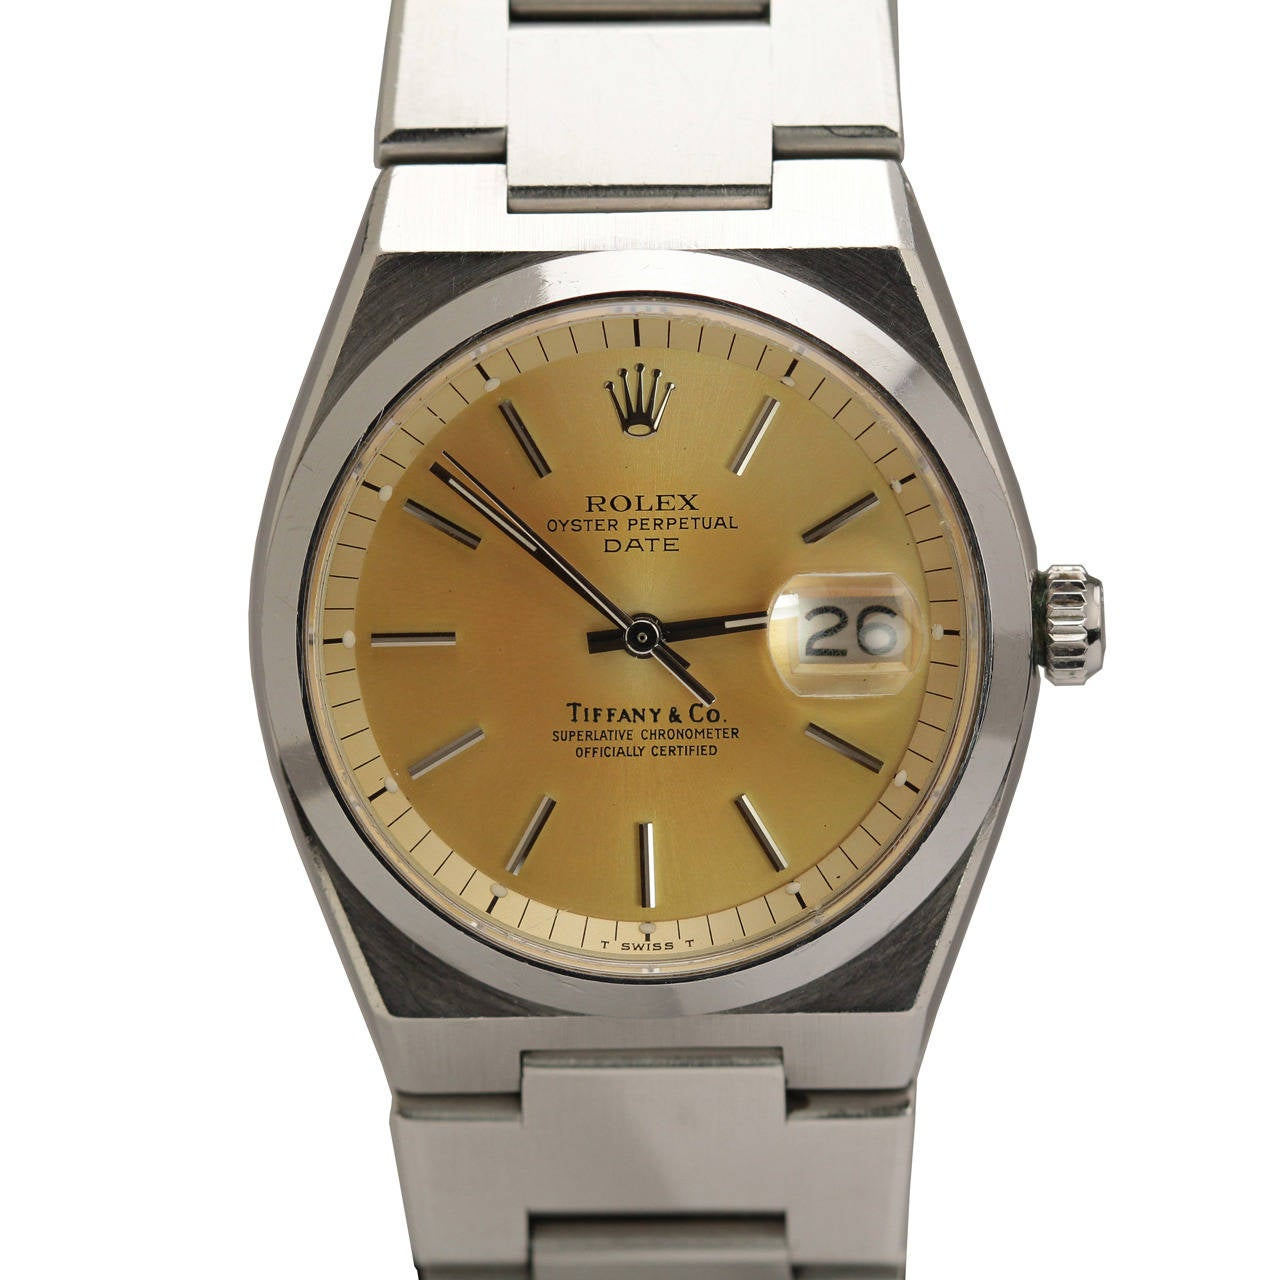 f85a8d9cd6d Rolex Stainless Steel Oyster Perpetual Date Ref 1530 Retailed by Tiffany &  Co.